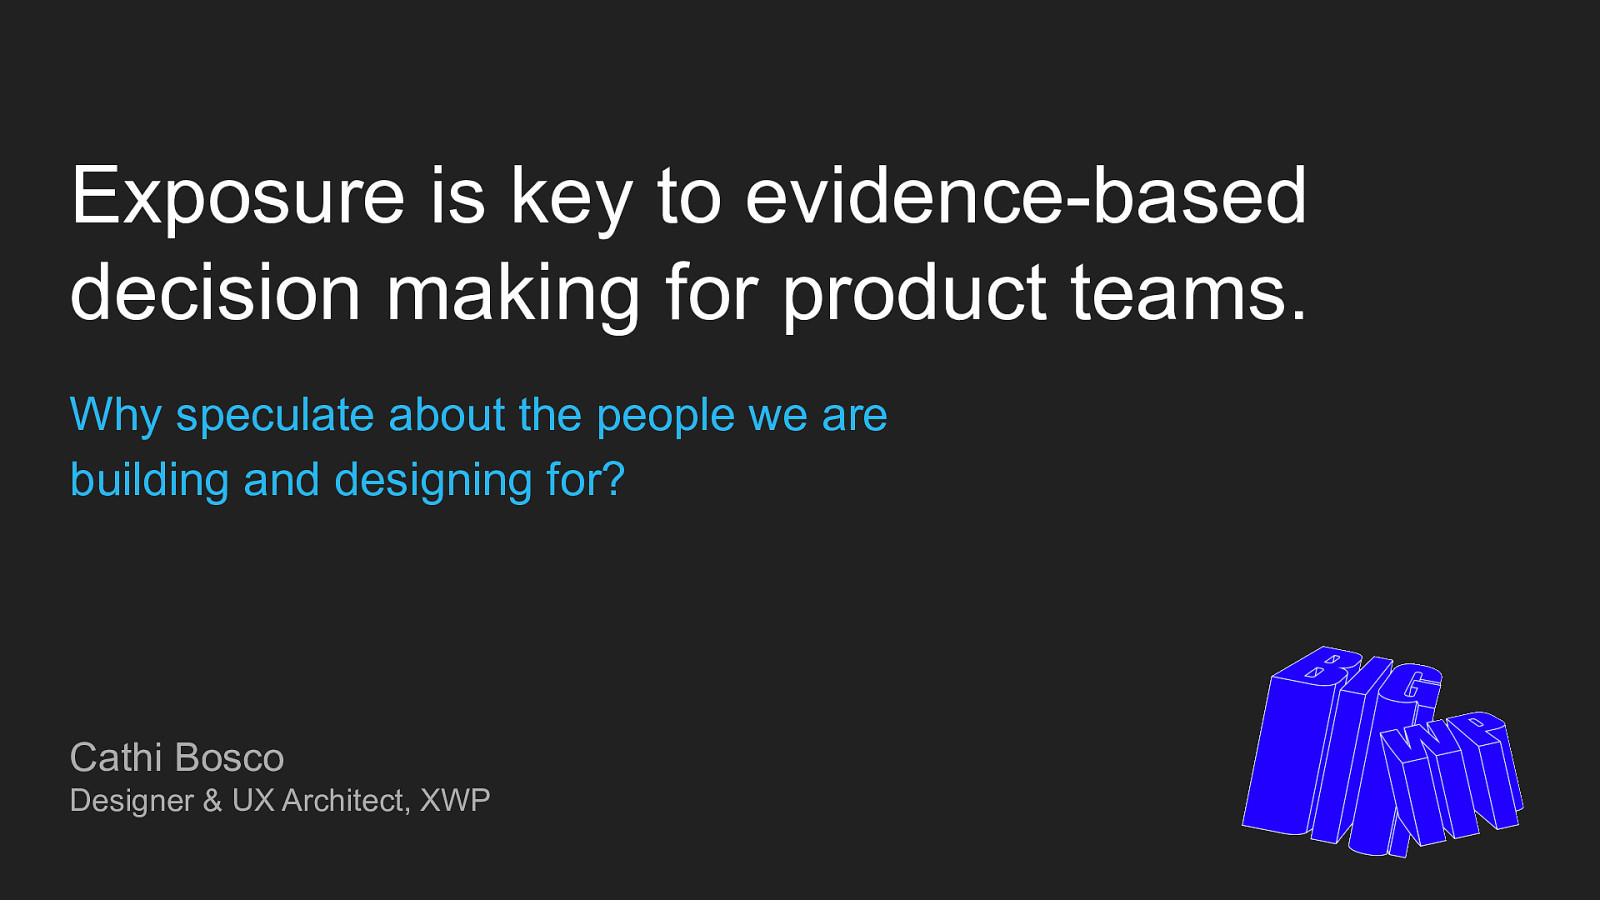 Exposure is key to evidence-based decision making for product teams.